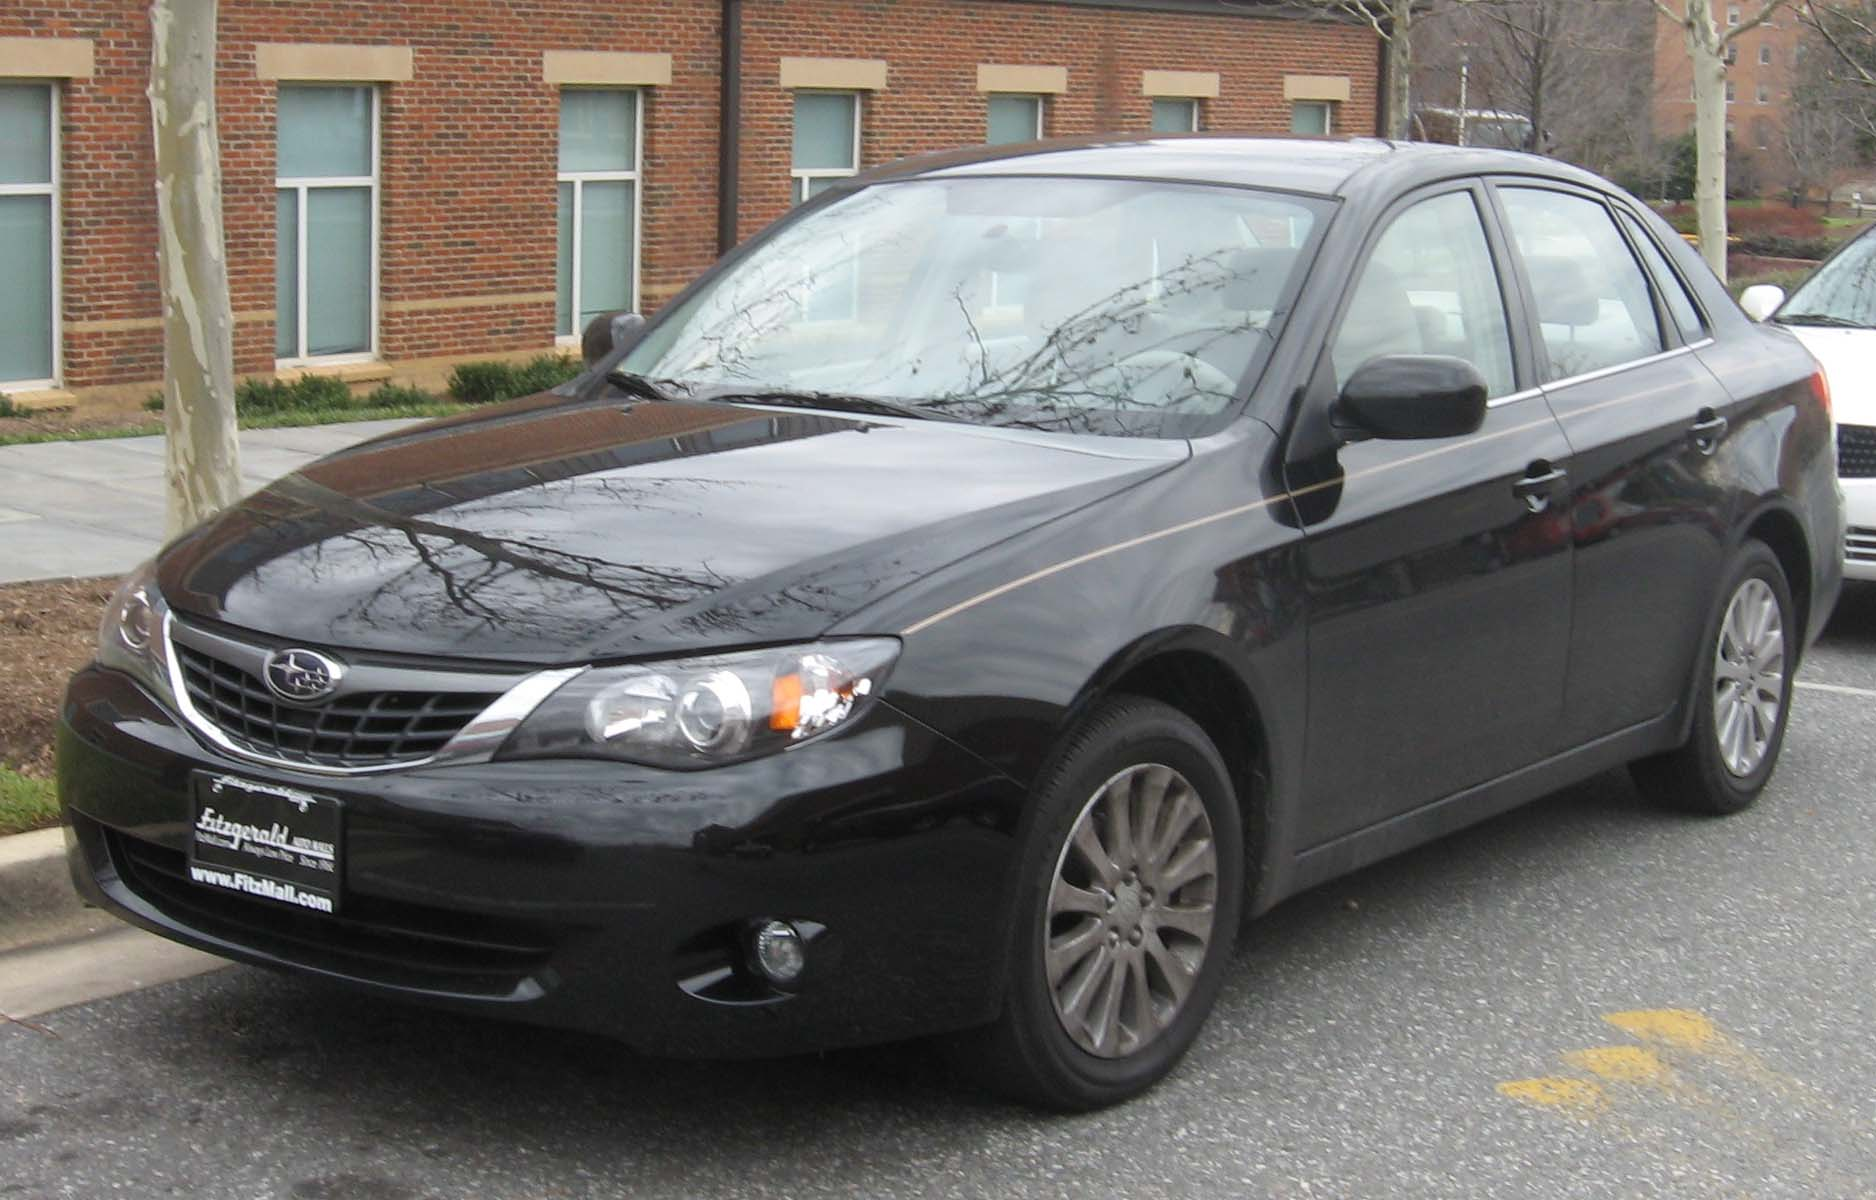 file 2008 subaru impreza sedan wikimedia commons. Black Bedroom Furniture Sets. Home Design Ideas